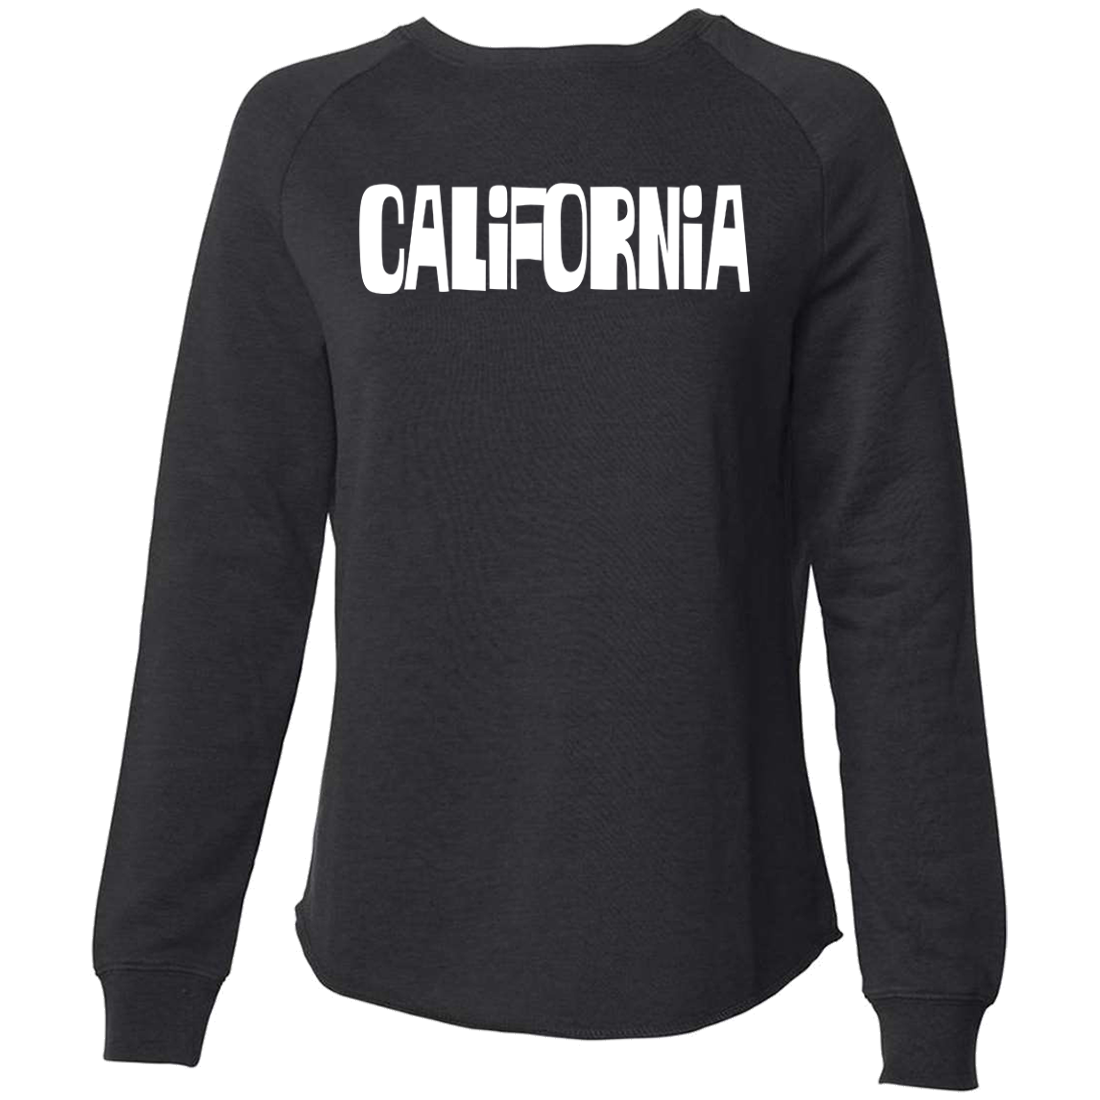 California Block Letters Super Soft Crewneck Sweater